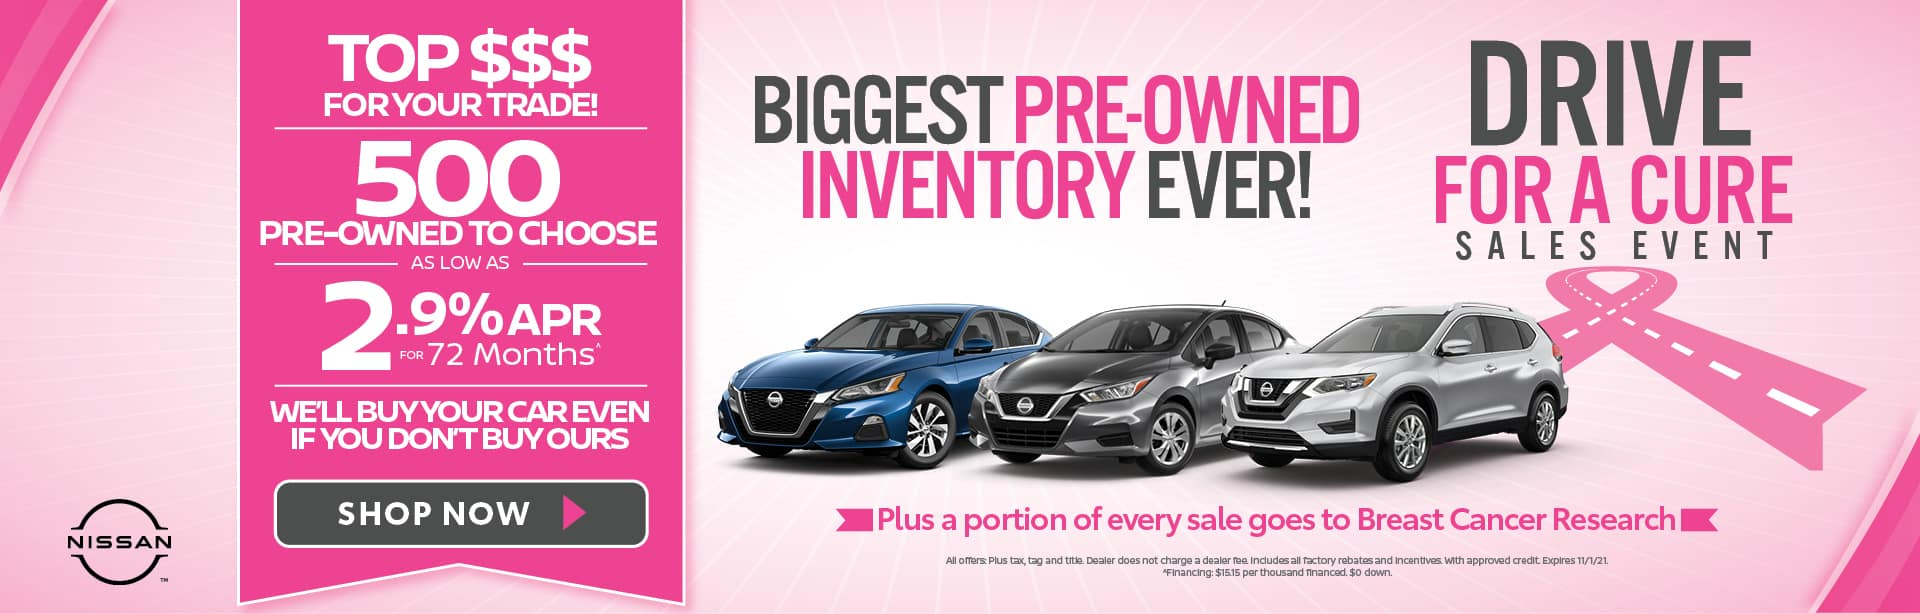 Biggest Pre-Owned Inventory Ever